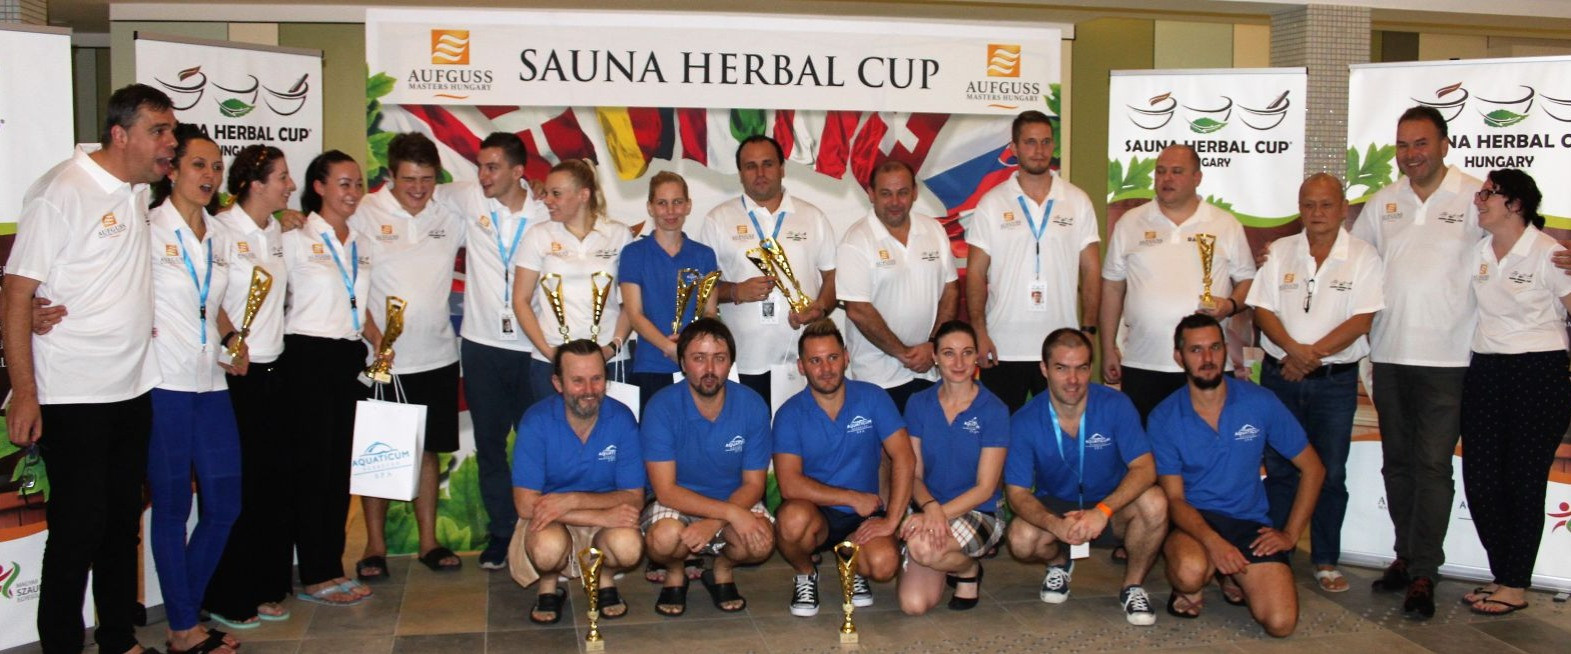 Sauna Herbal Cup Hungary